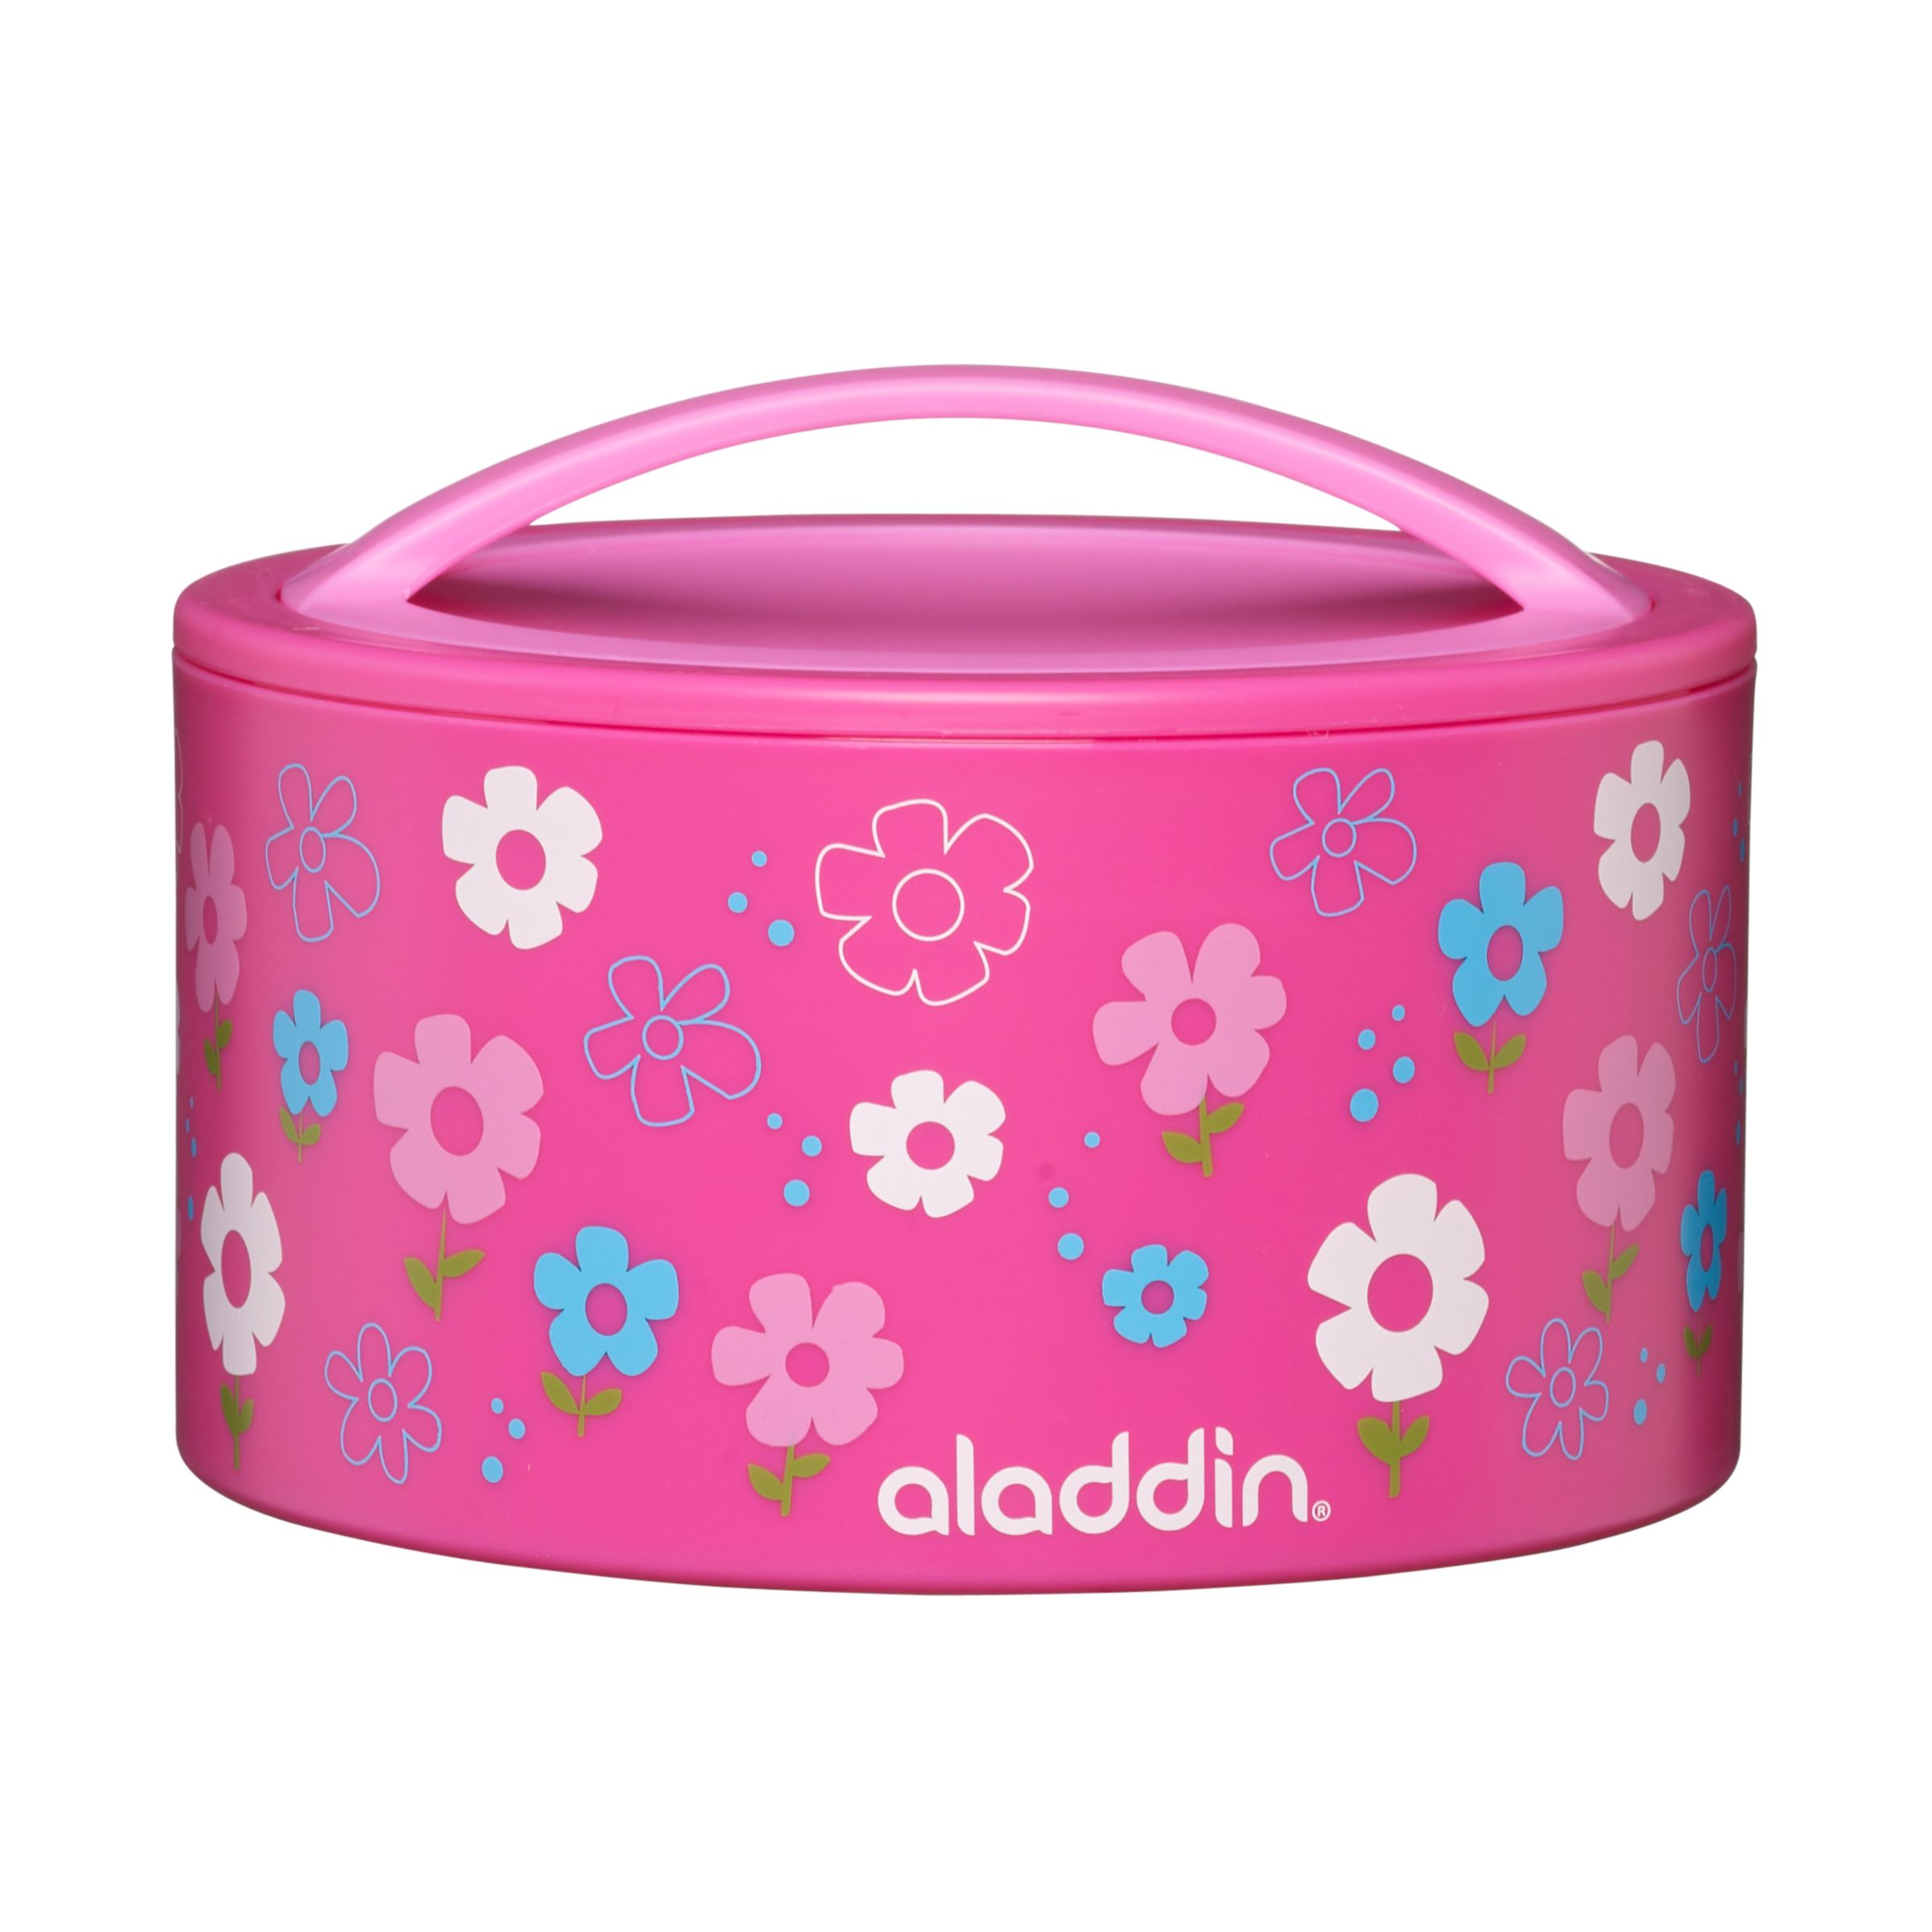 Aladdin Bento Kids Lunch Box, Pink